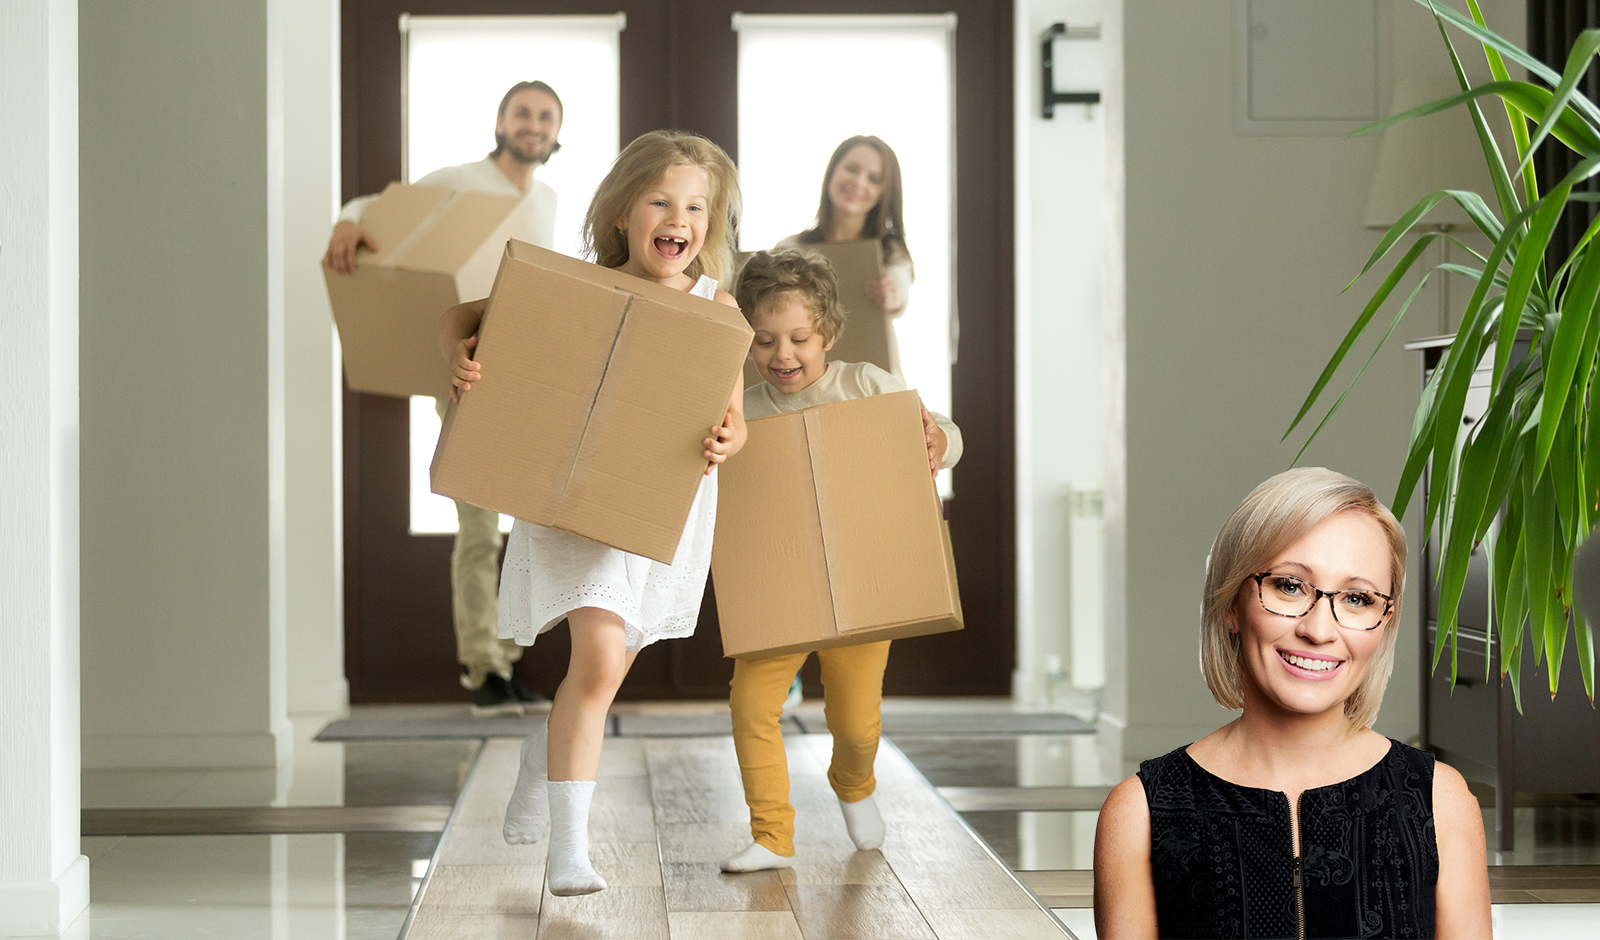 CAN I BUY A PROPERTY WHILE I AM A TENANT?